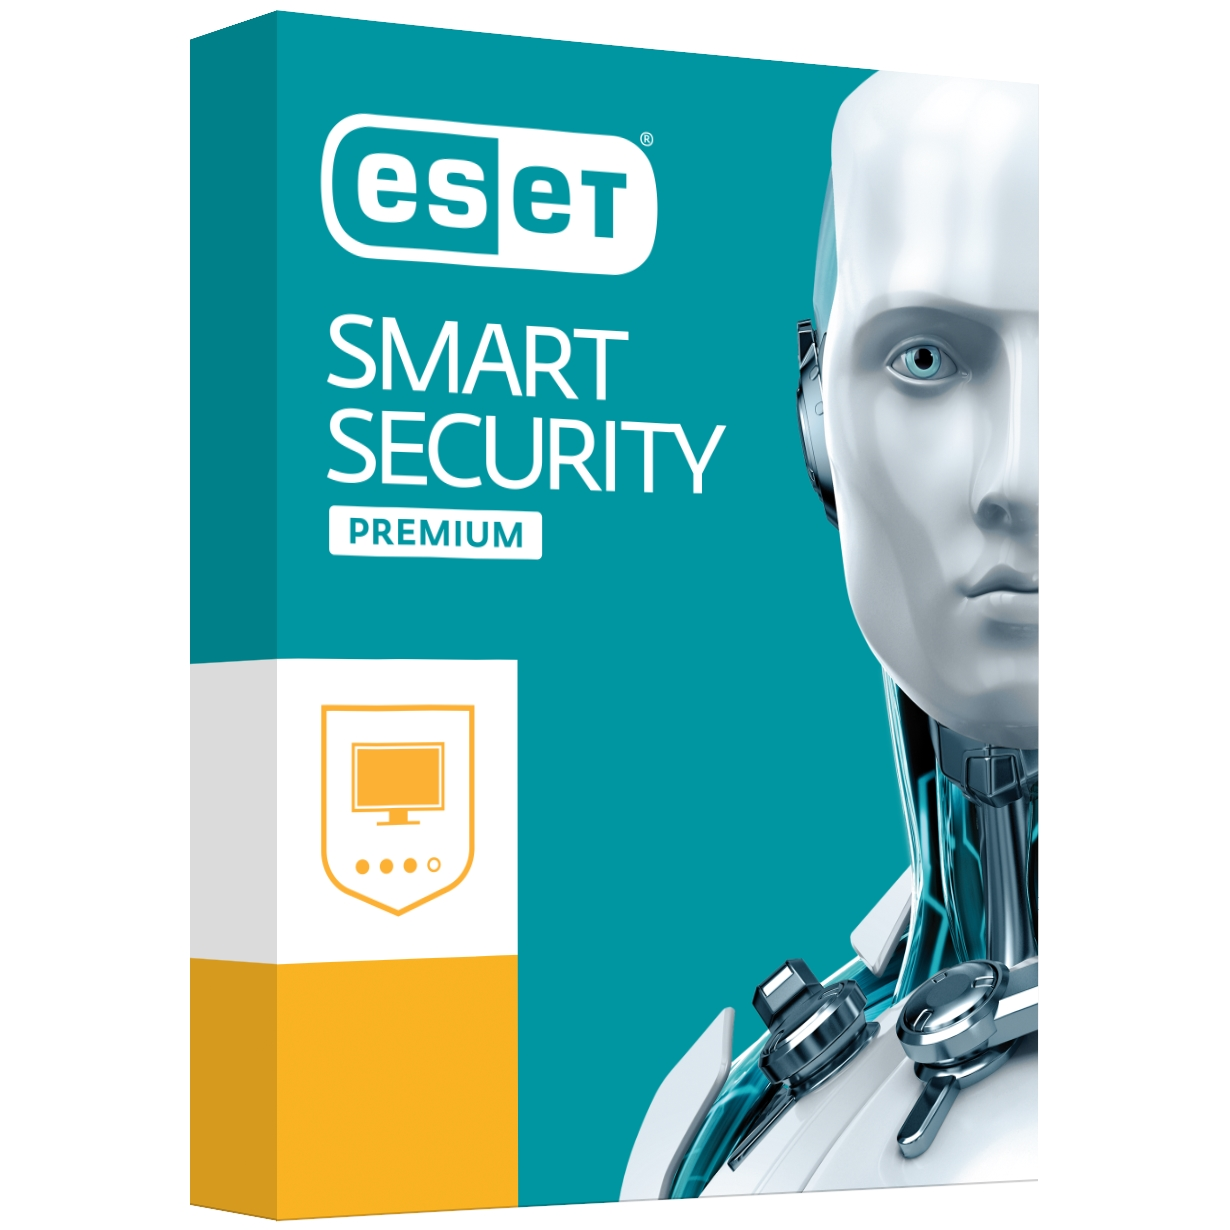 ESET NOD32 SMART SECURITY PREMIUM 1 KULLANICI 1 YIL